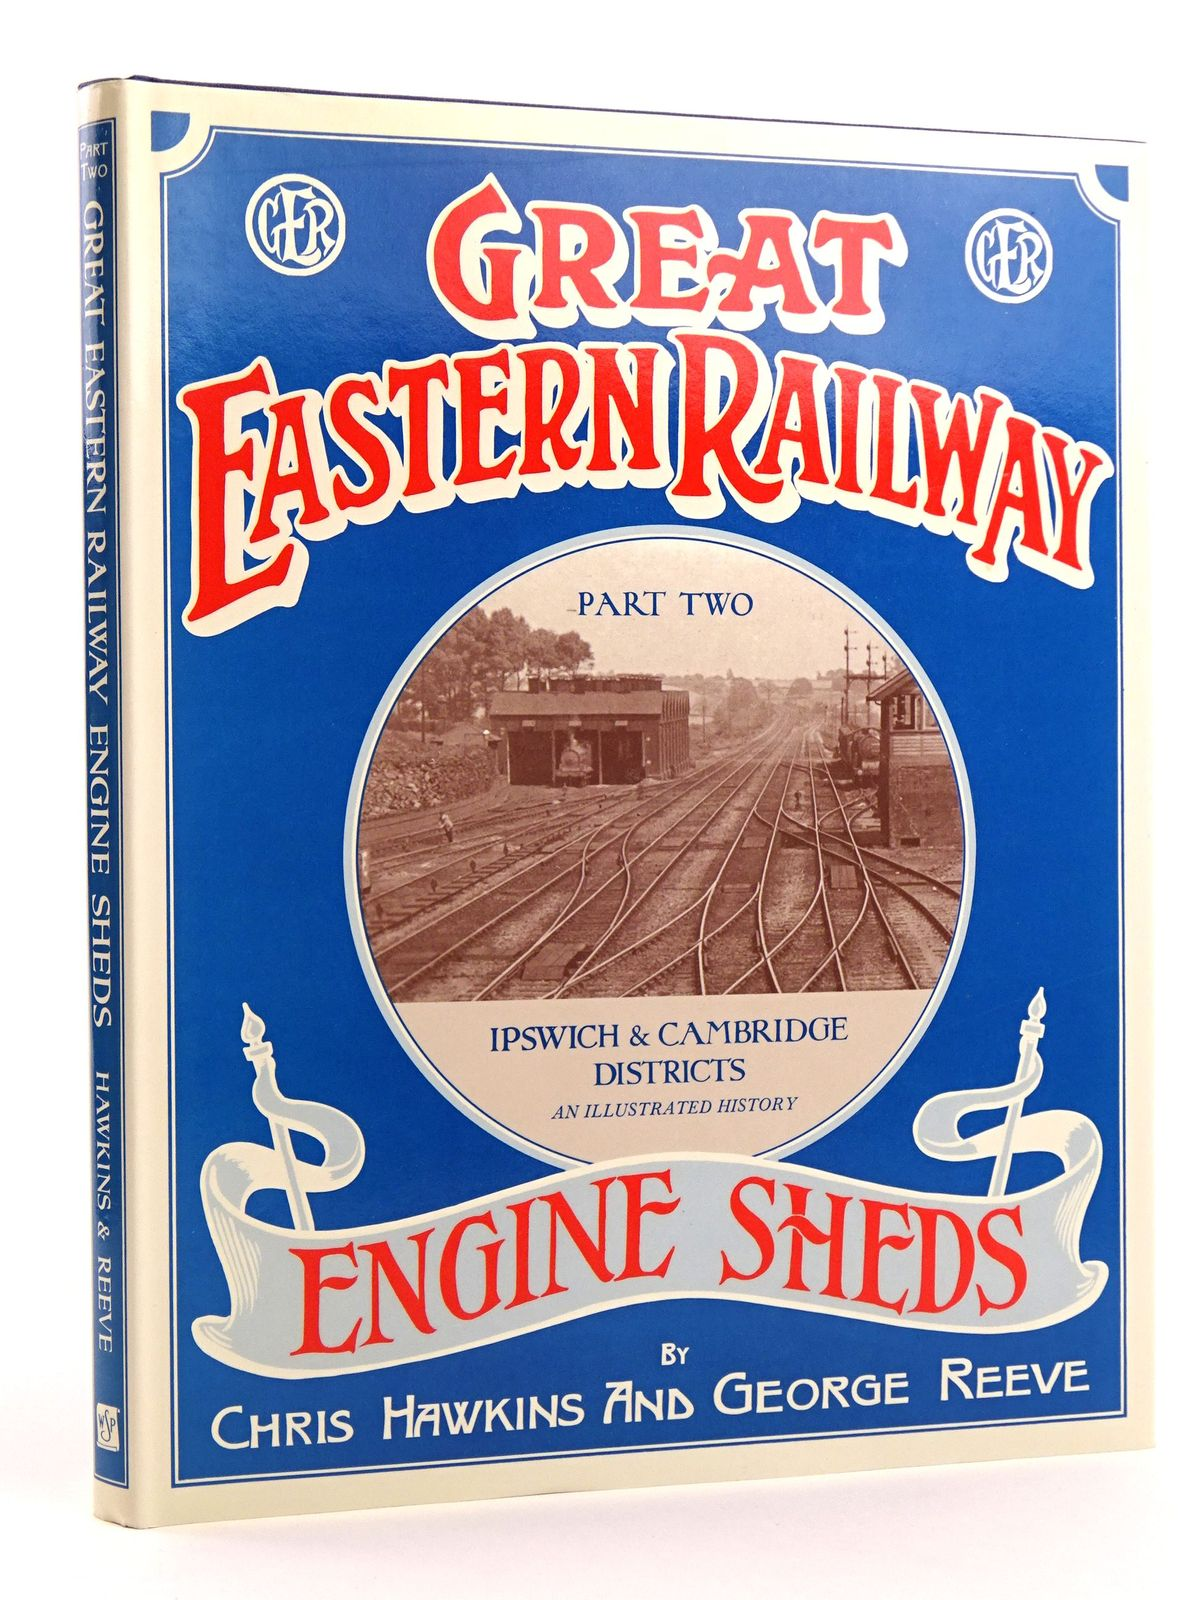 Photo of GREAT EASTERN RAILWAY ENGINE SHEDS PART TWO: IPSWICH AND CAMBRIDGE LOCOMOTIVE DISTRICTS written by Hawkins, Chris Reeve, George published by Wild Swan Publications (STOCK CODE: 1818113)  for sale by Stella & Rose's Books